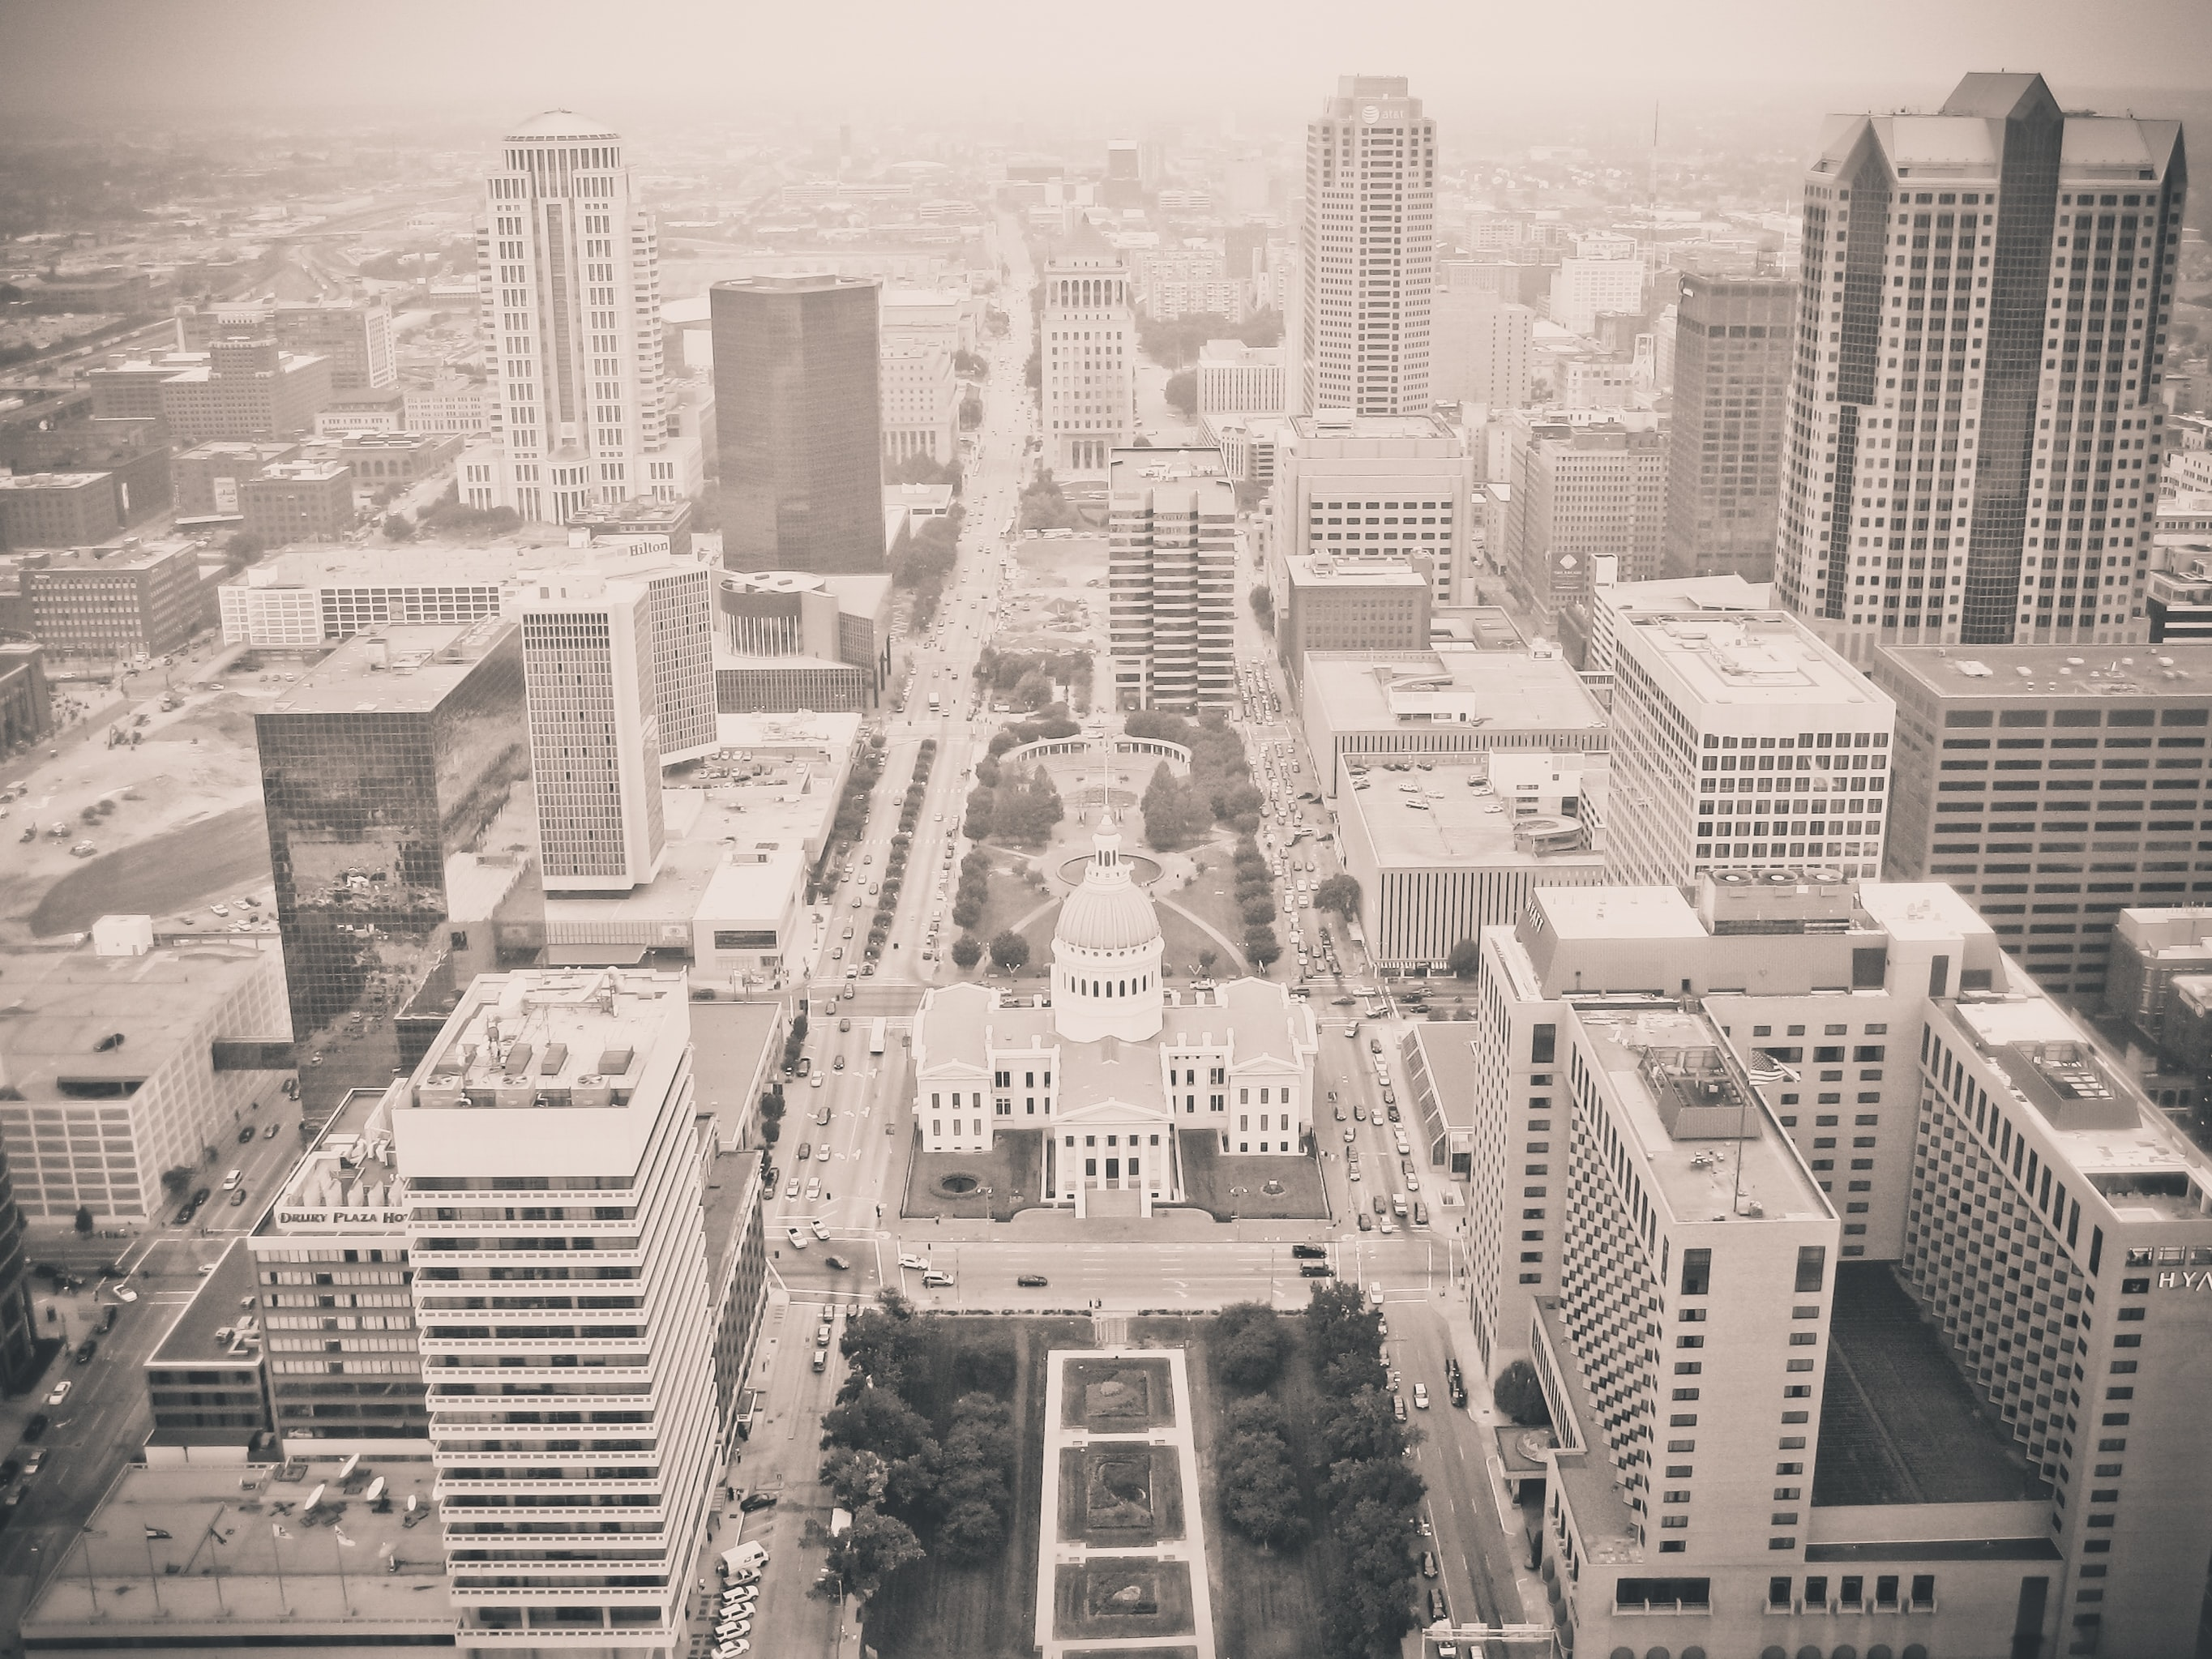 Black and white shot of business district of city from above